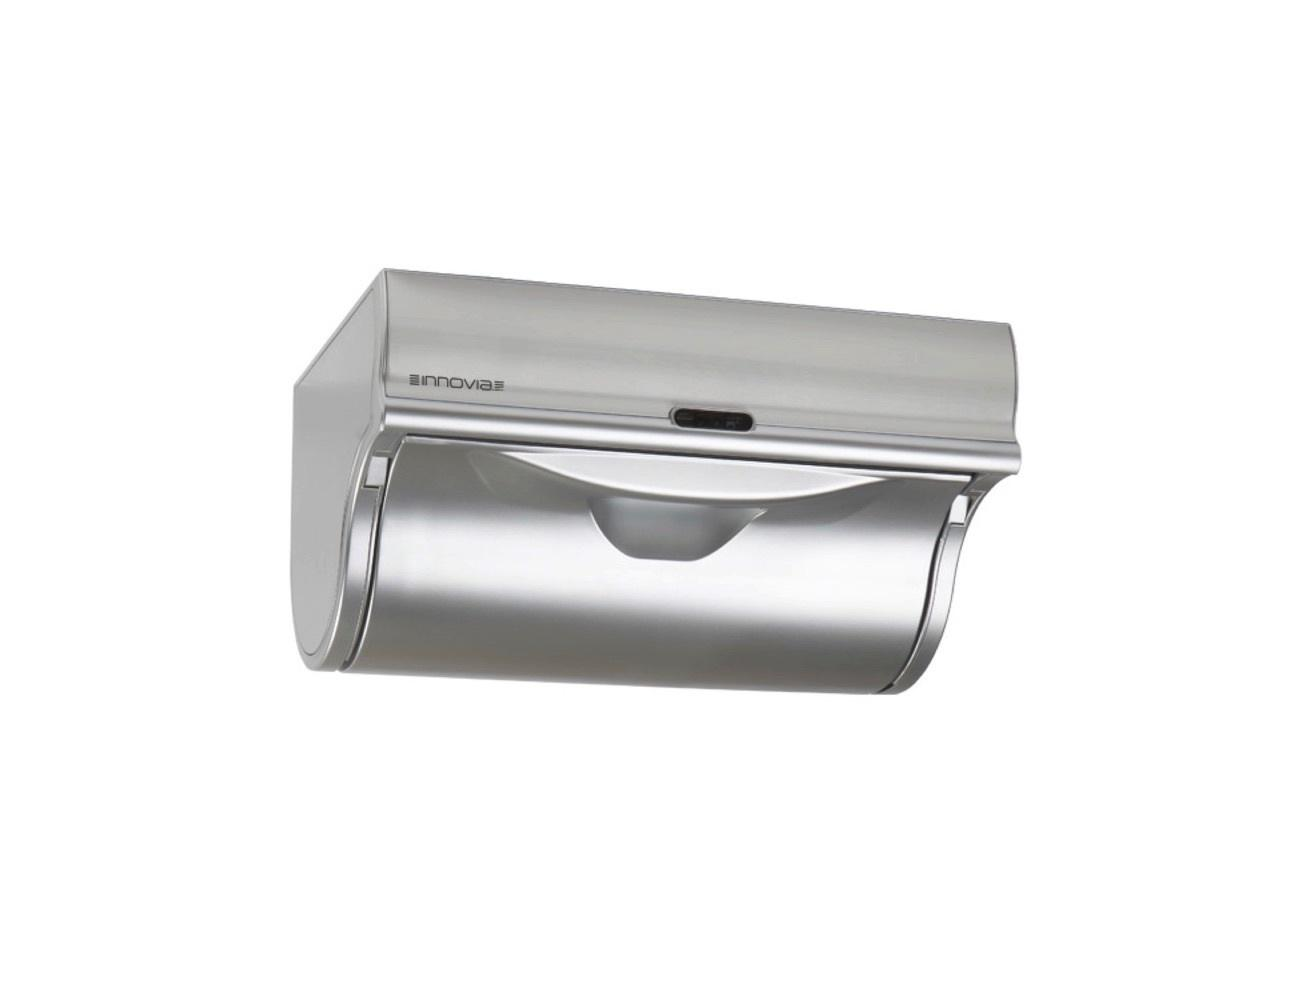 ... Innovia Under Cabinet Paper Towel Dispenser